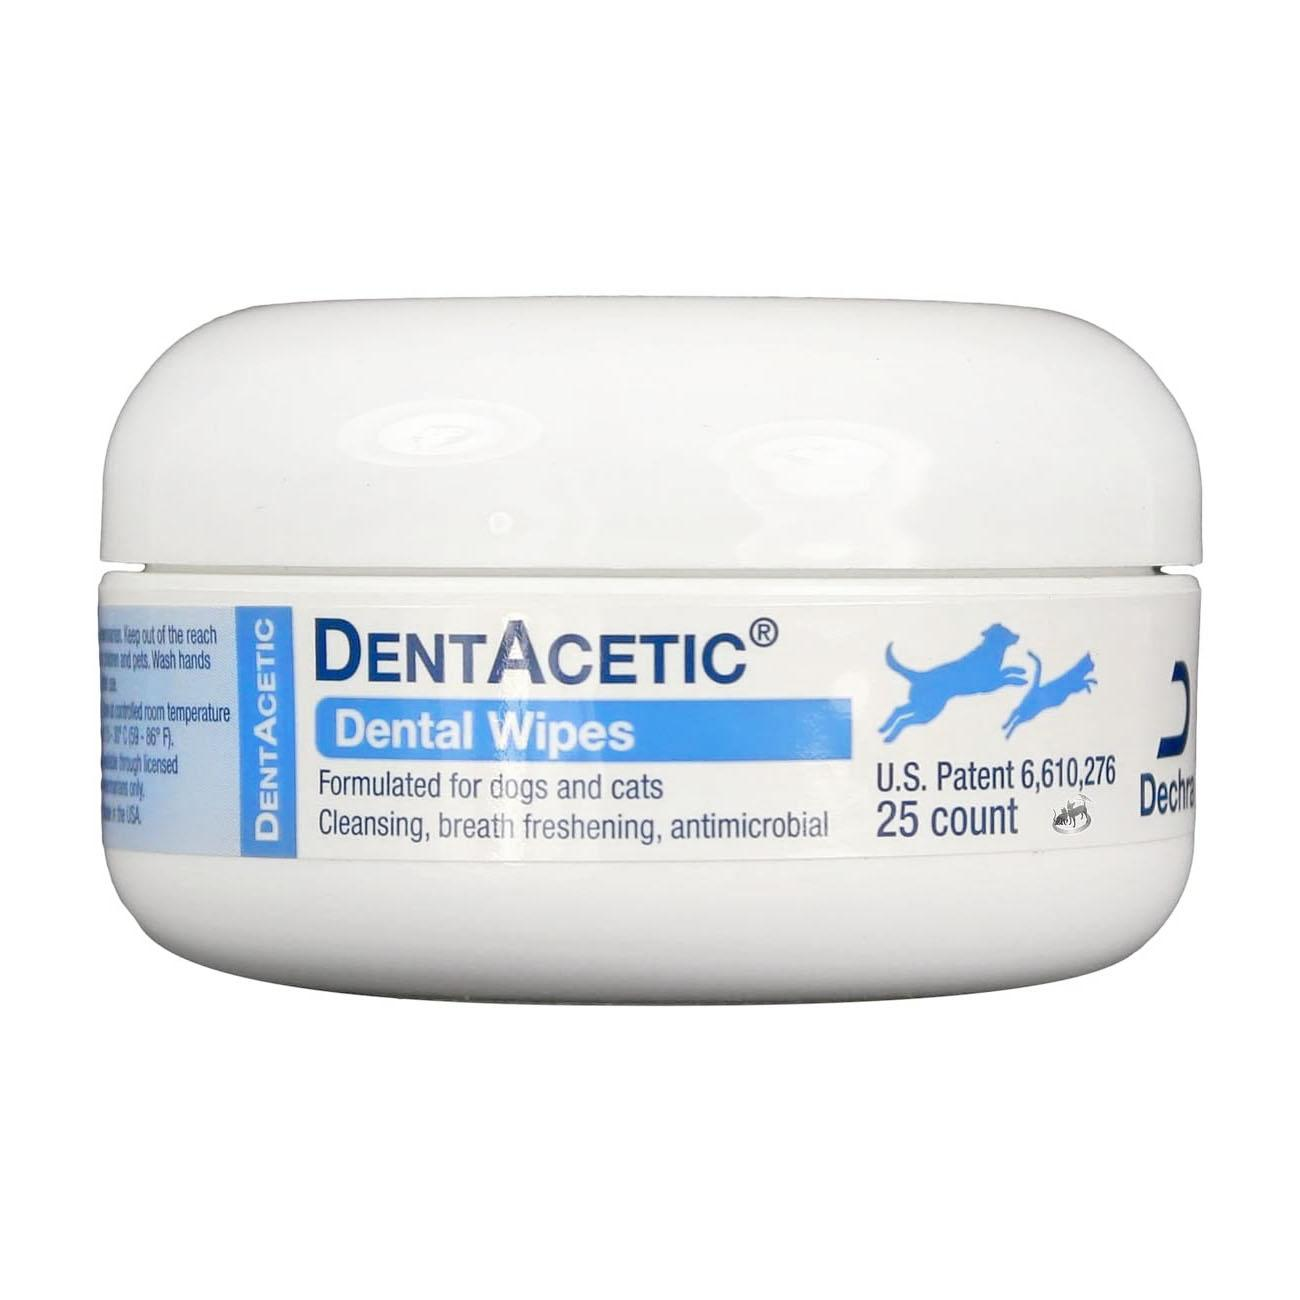 Dechra DentAcetic Dental Wipes for Dogs and Cats